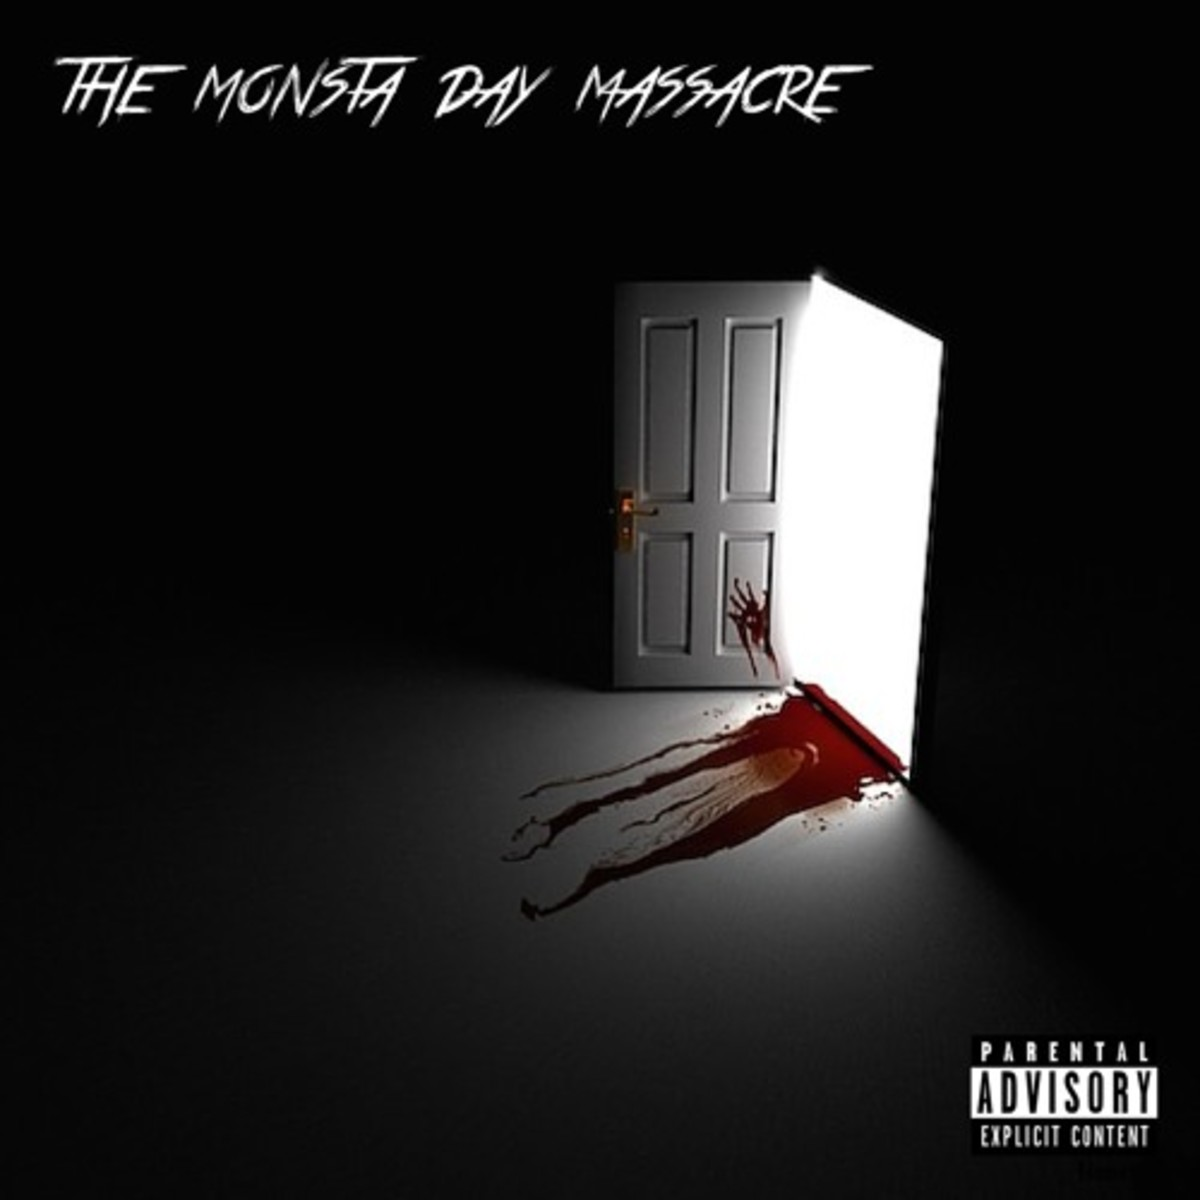 monstabeatz-the-monsta-day-massacre.jpg